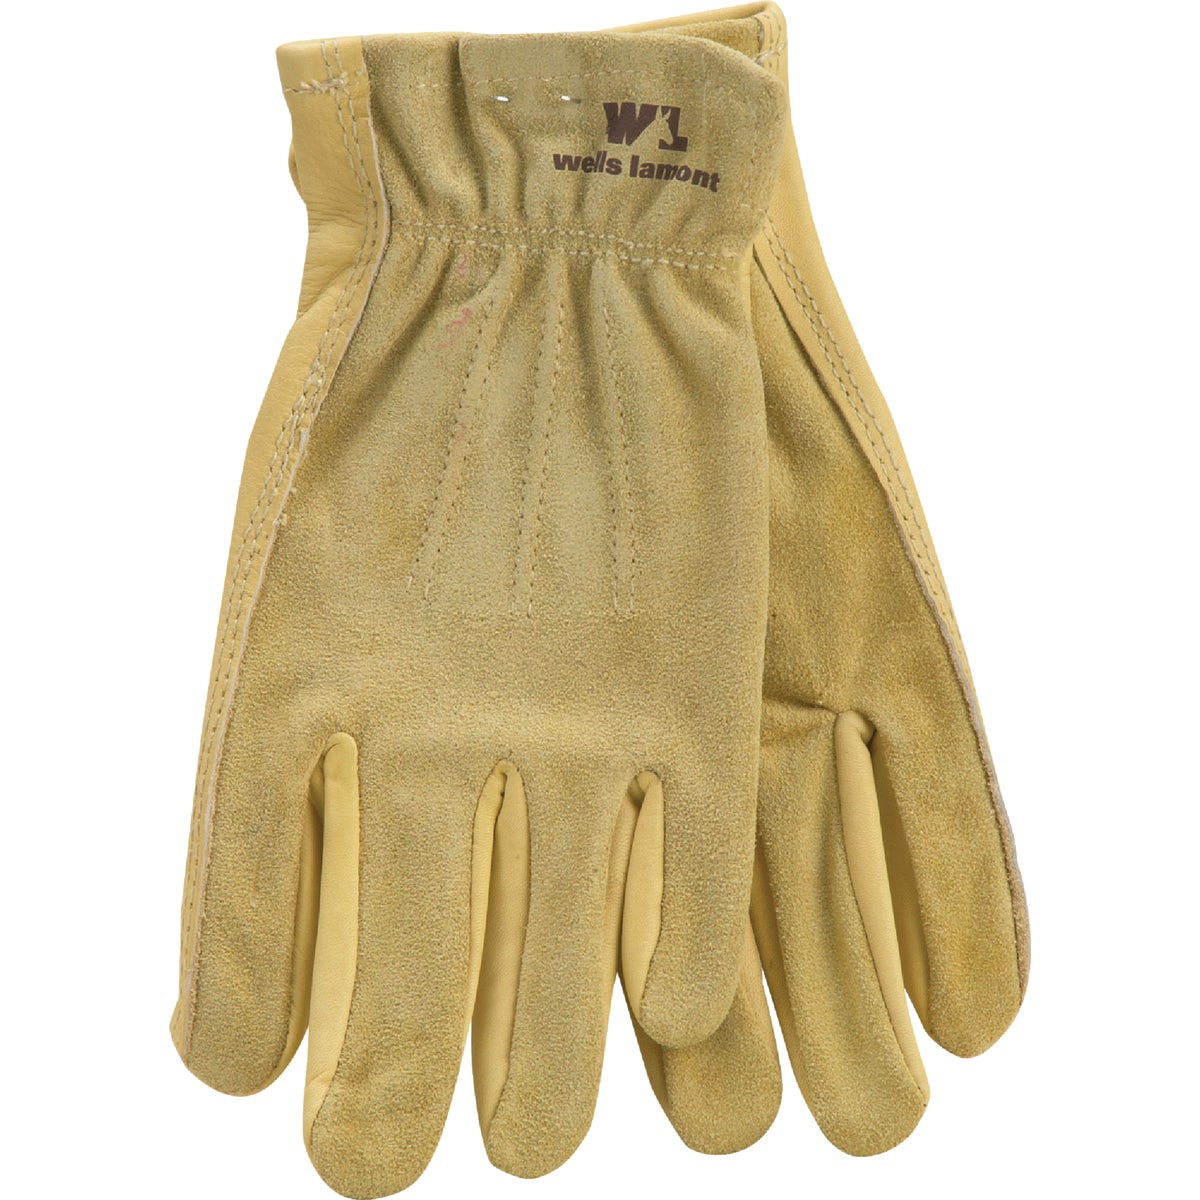 MED LADIES COWHIDE GLOVE - 1124M by Wells Lamont